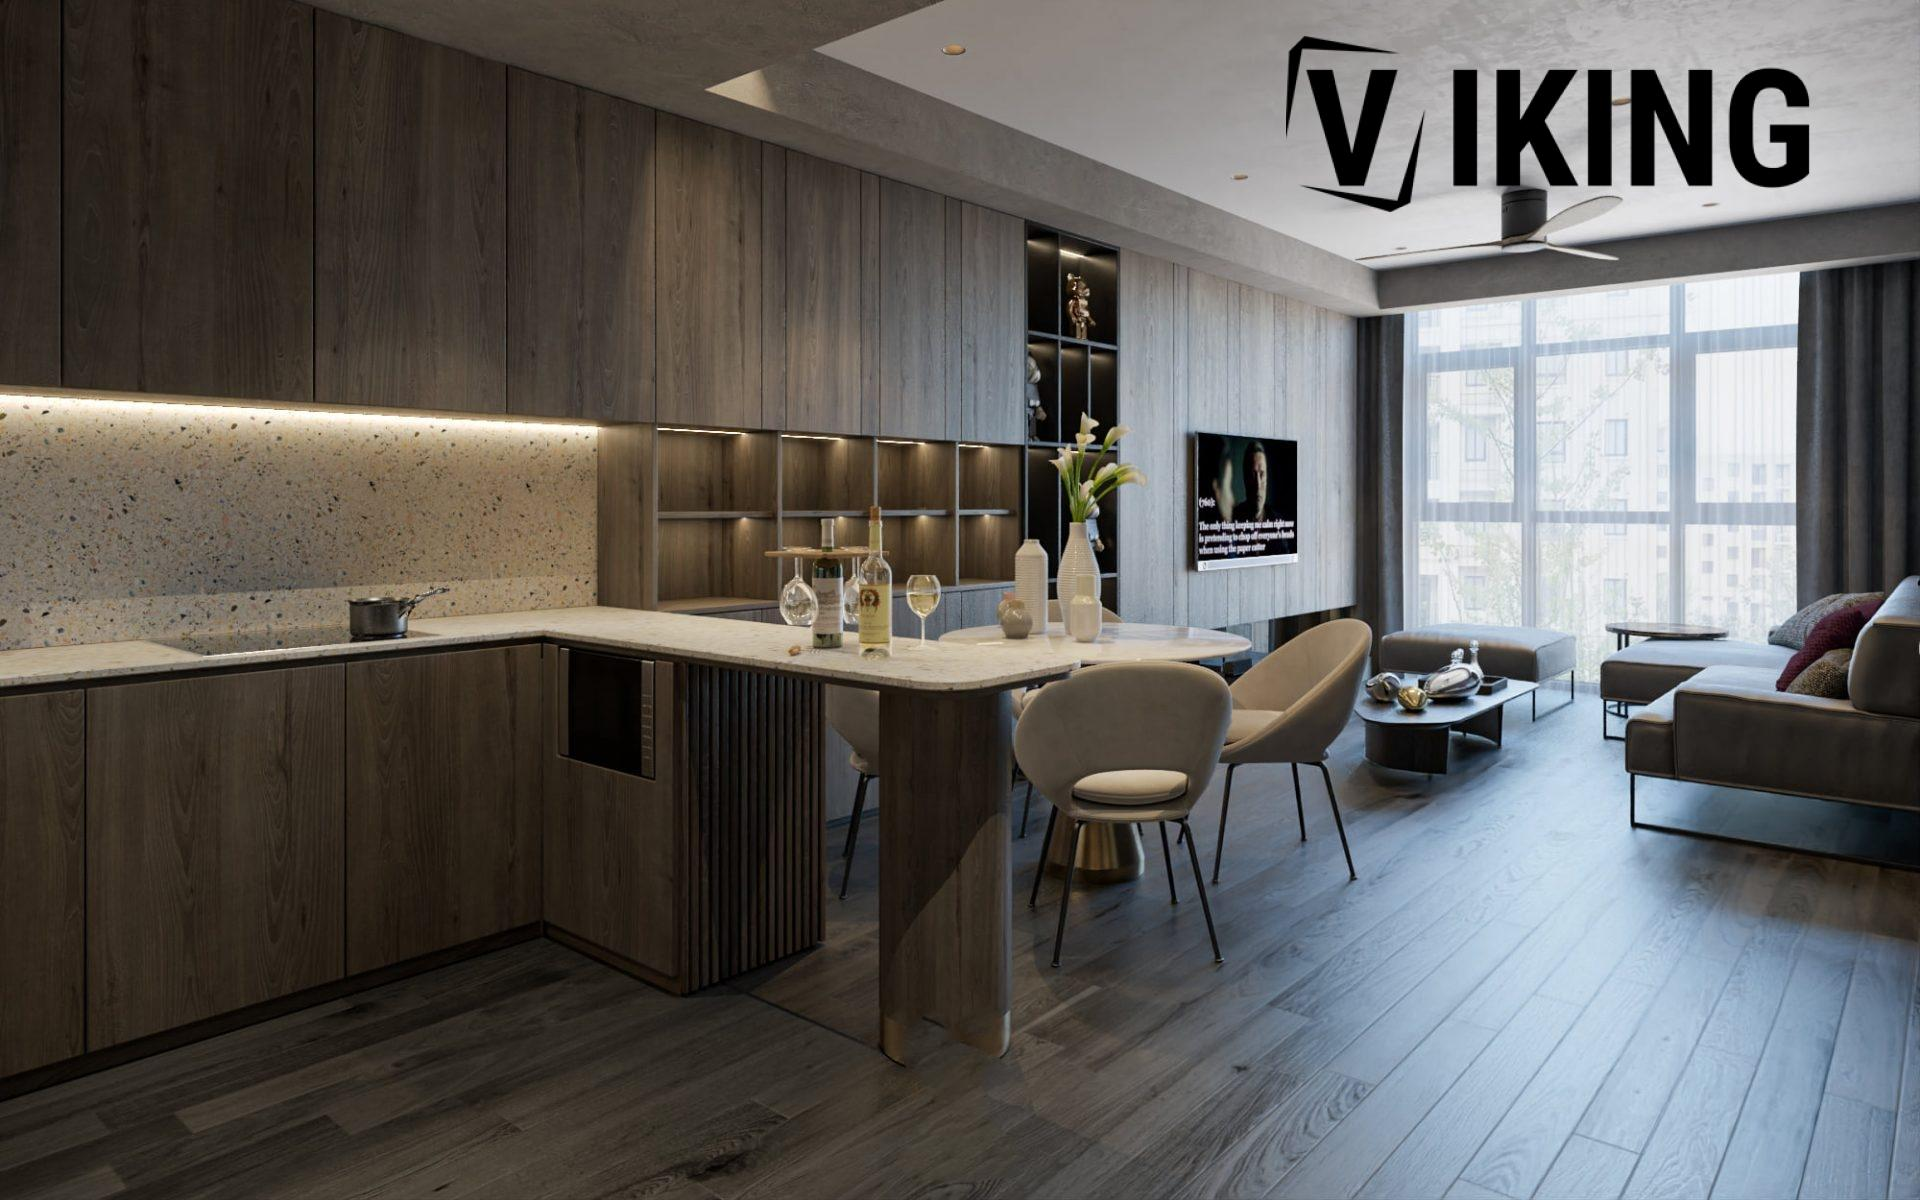 4591.Interior Apartment Scene 3dsmax File free download by Dat Le 1